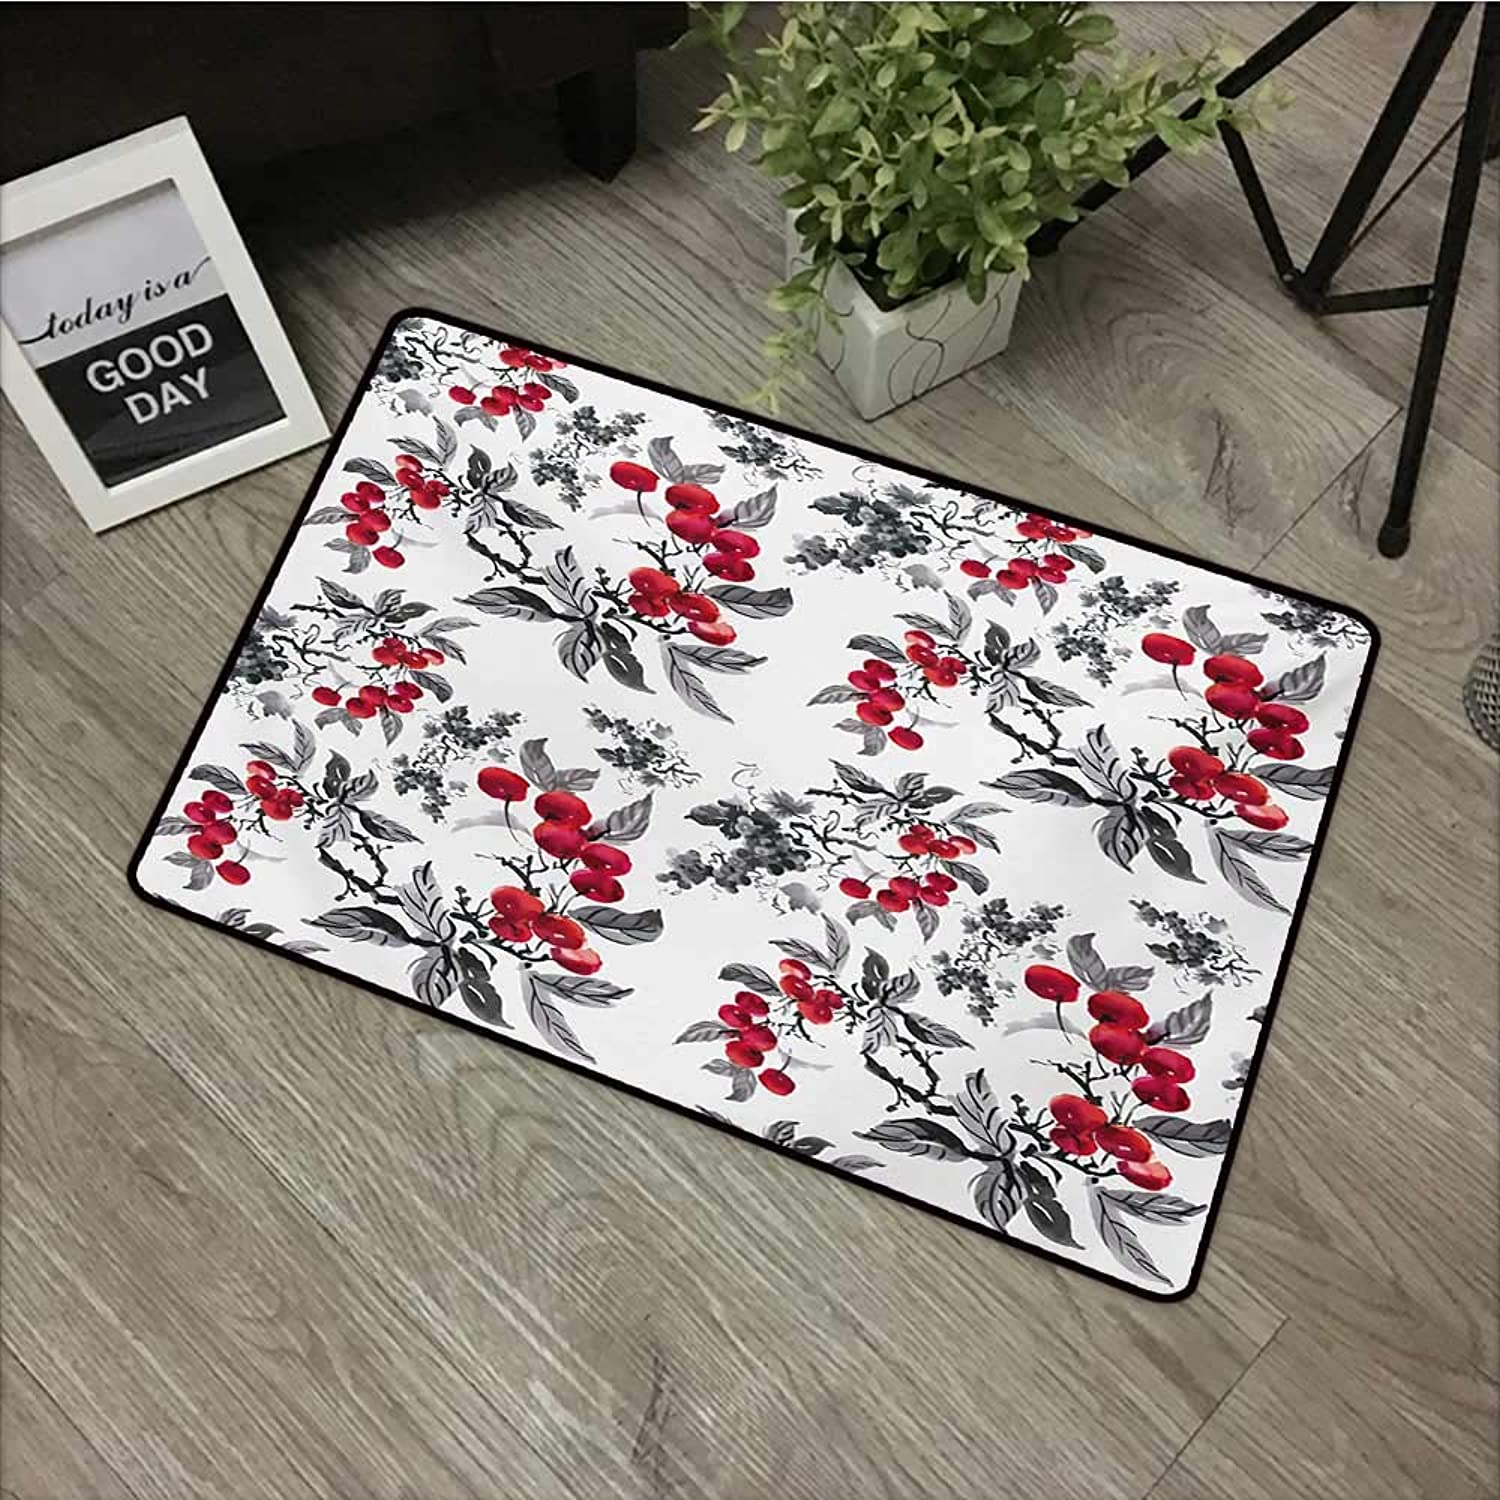 Floor mat W35 x L59 INCH Rowan,Abstract Modern Garden Theme with Artistic Rowan Plant Botanical Pattern Design,Ruby Grey Black Natural dye printing to predect your baby's skin Non-slip Door Mat Carpet